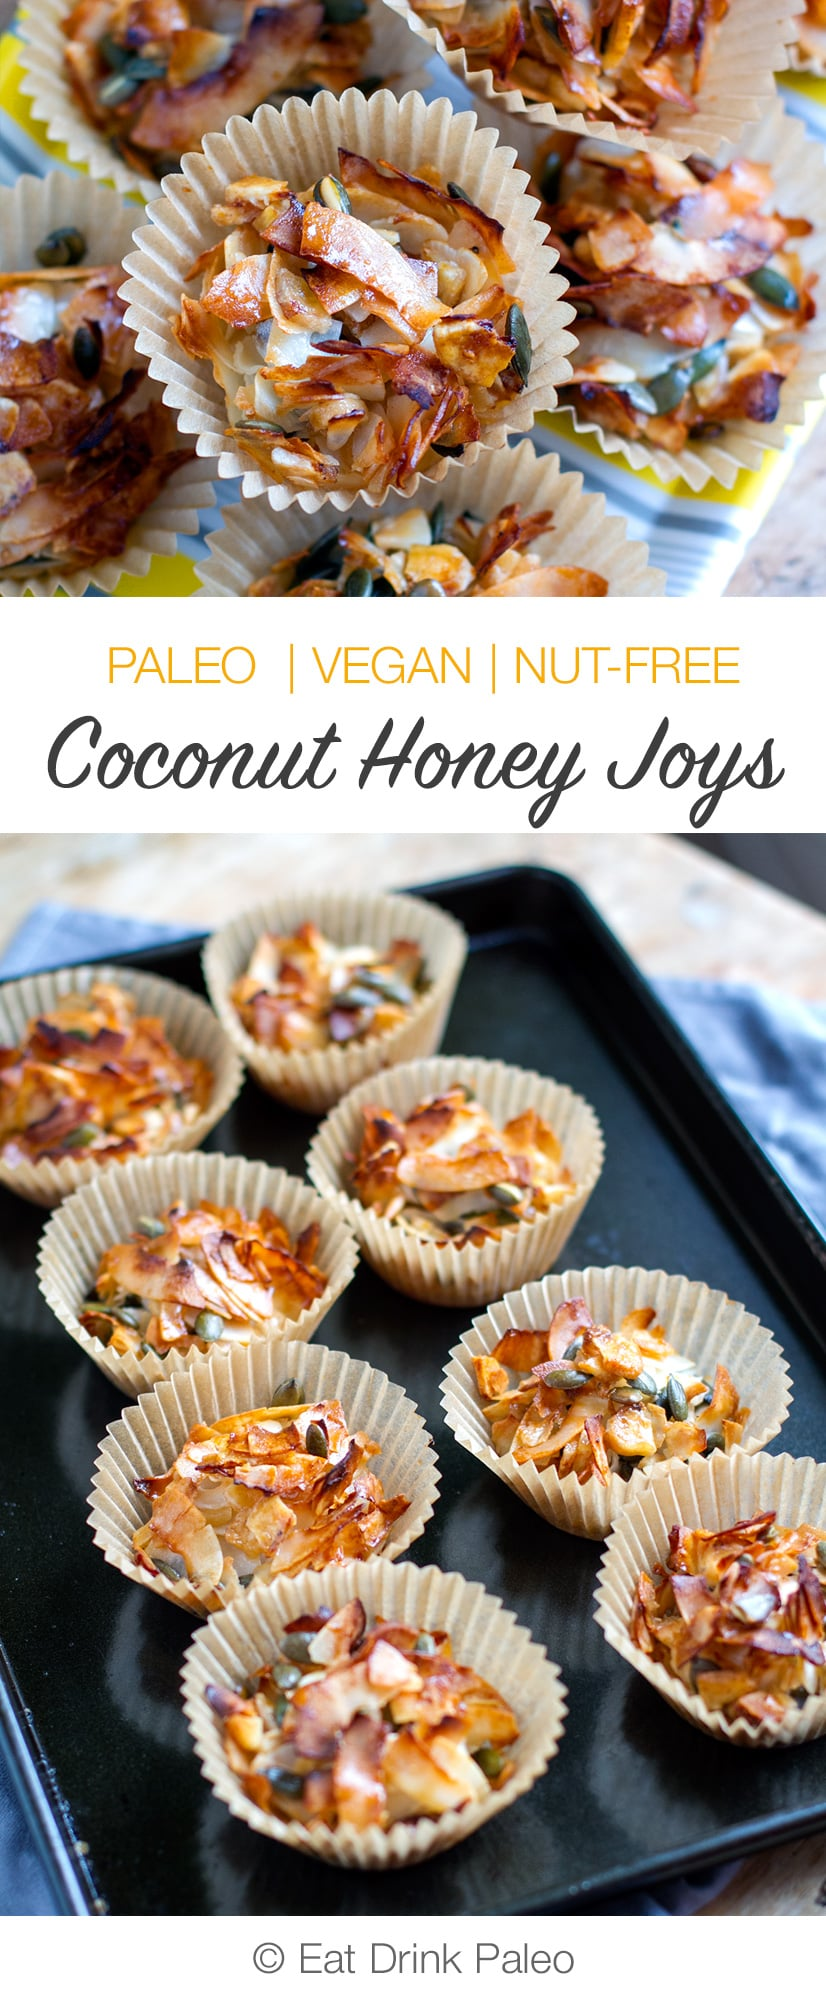 Coconut Honey Joys (Paleo, Vegan, Gluten-Free, Nut-Free, Corn-Free)